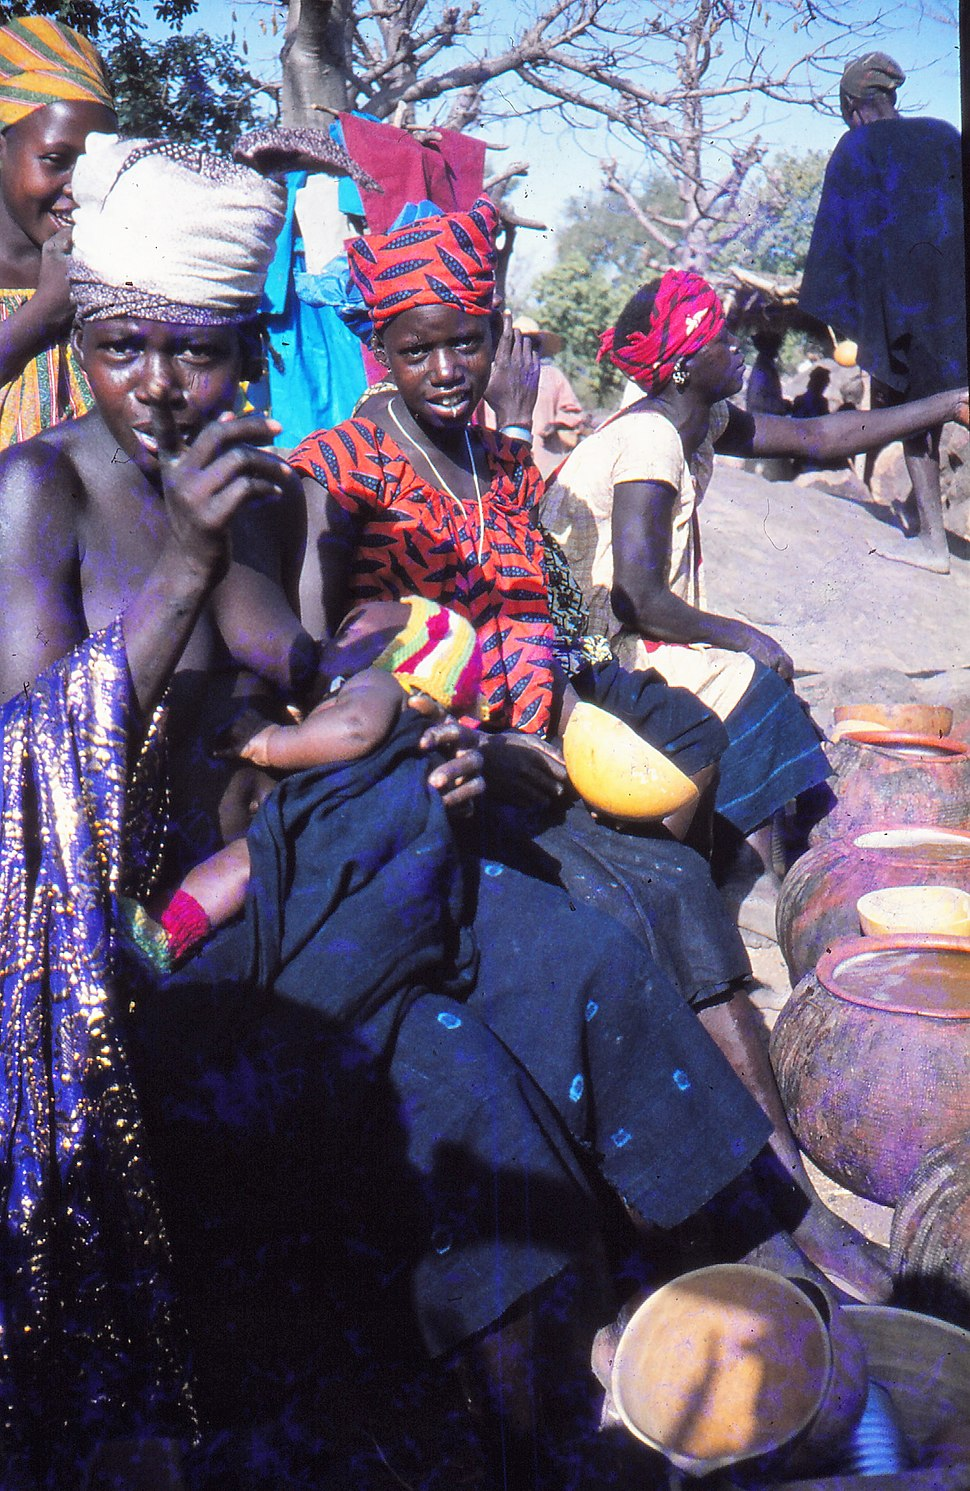 ASC Leiden - W.E.A. van Beek Collection - Dogon markets 21 - Women selling their beer warn the photographer that he also has to buy some, Tireli, Mali 1989